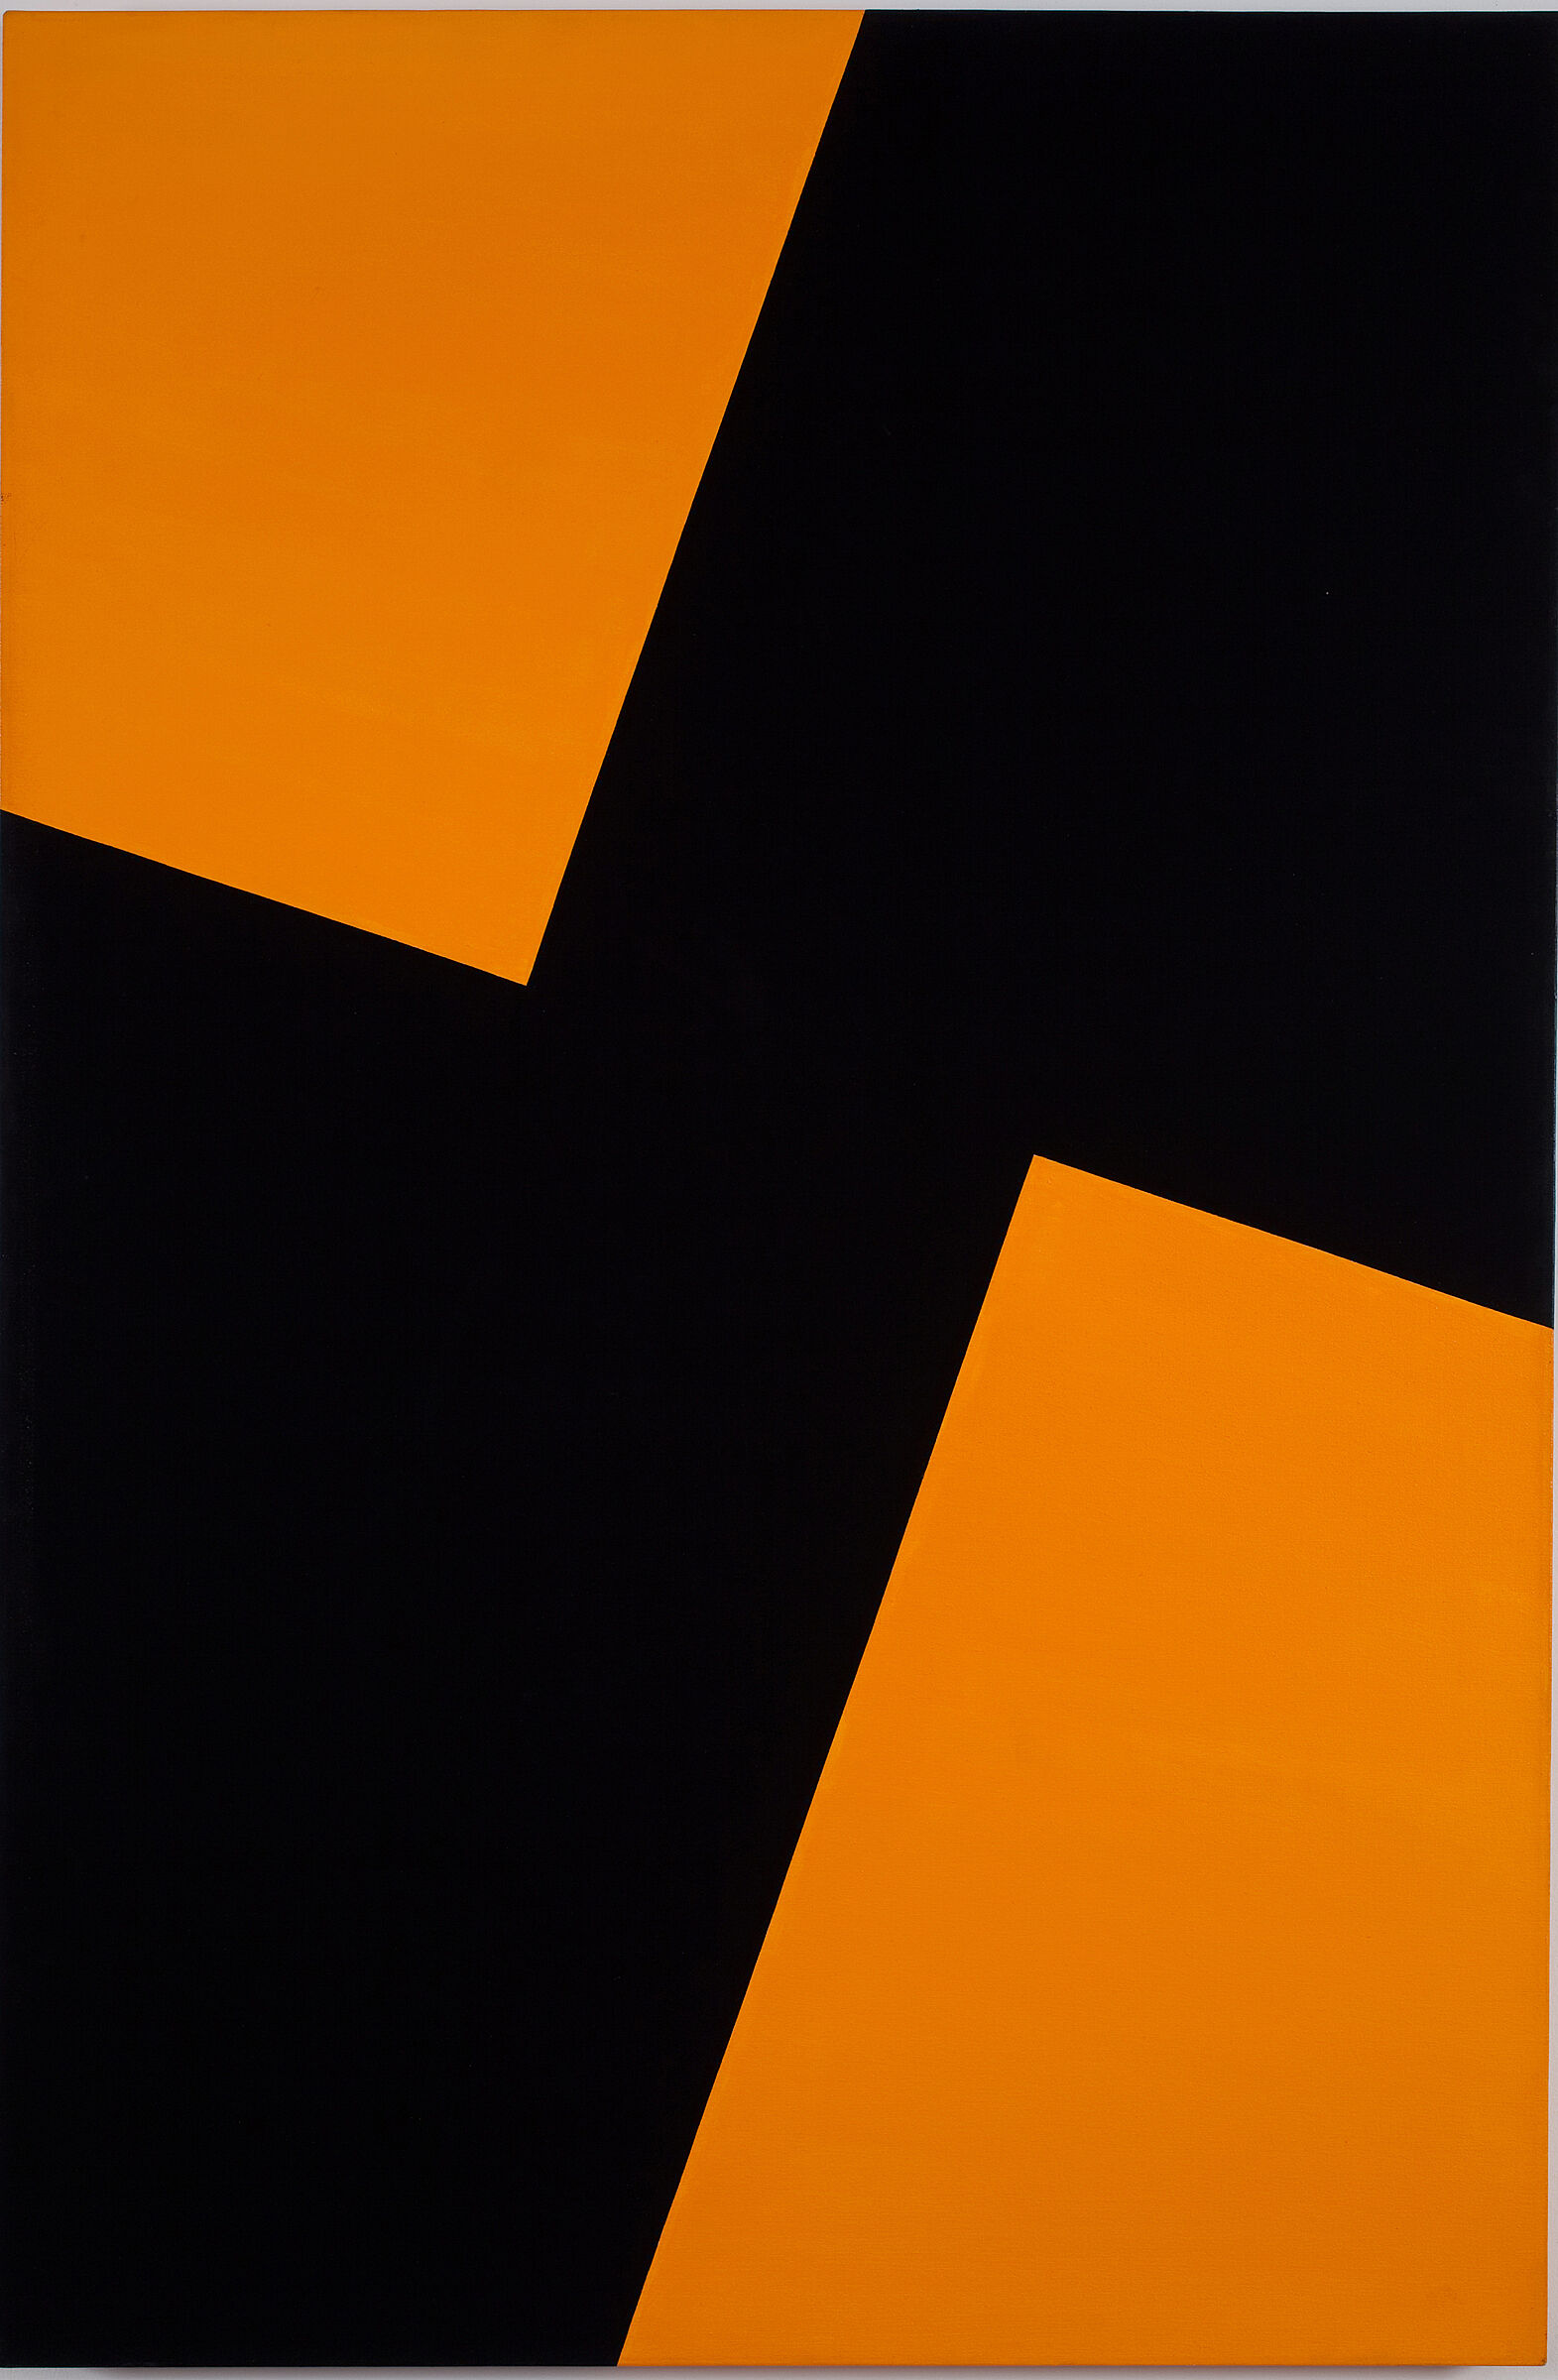 A black and orange artwork by Carmen Herrera.